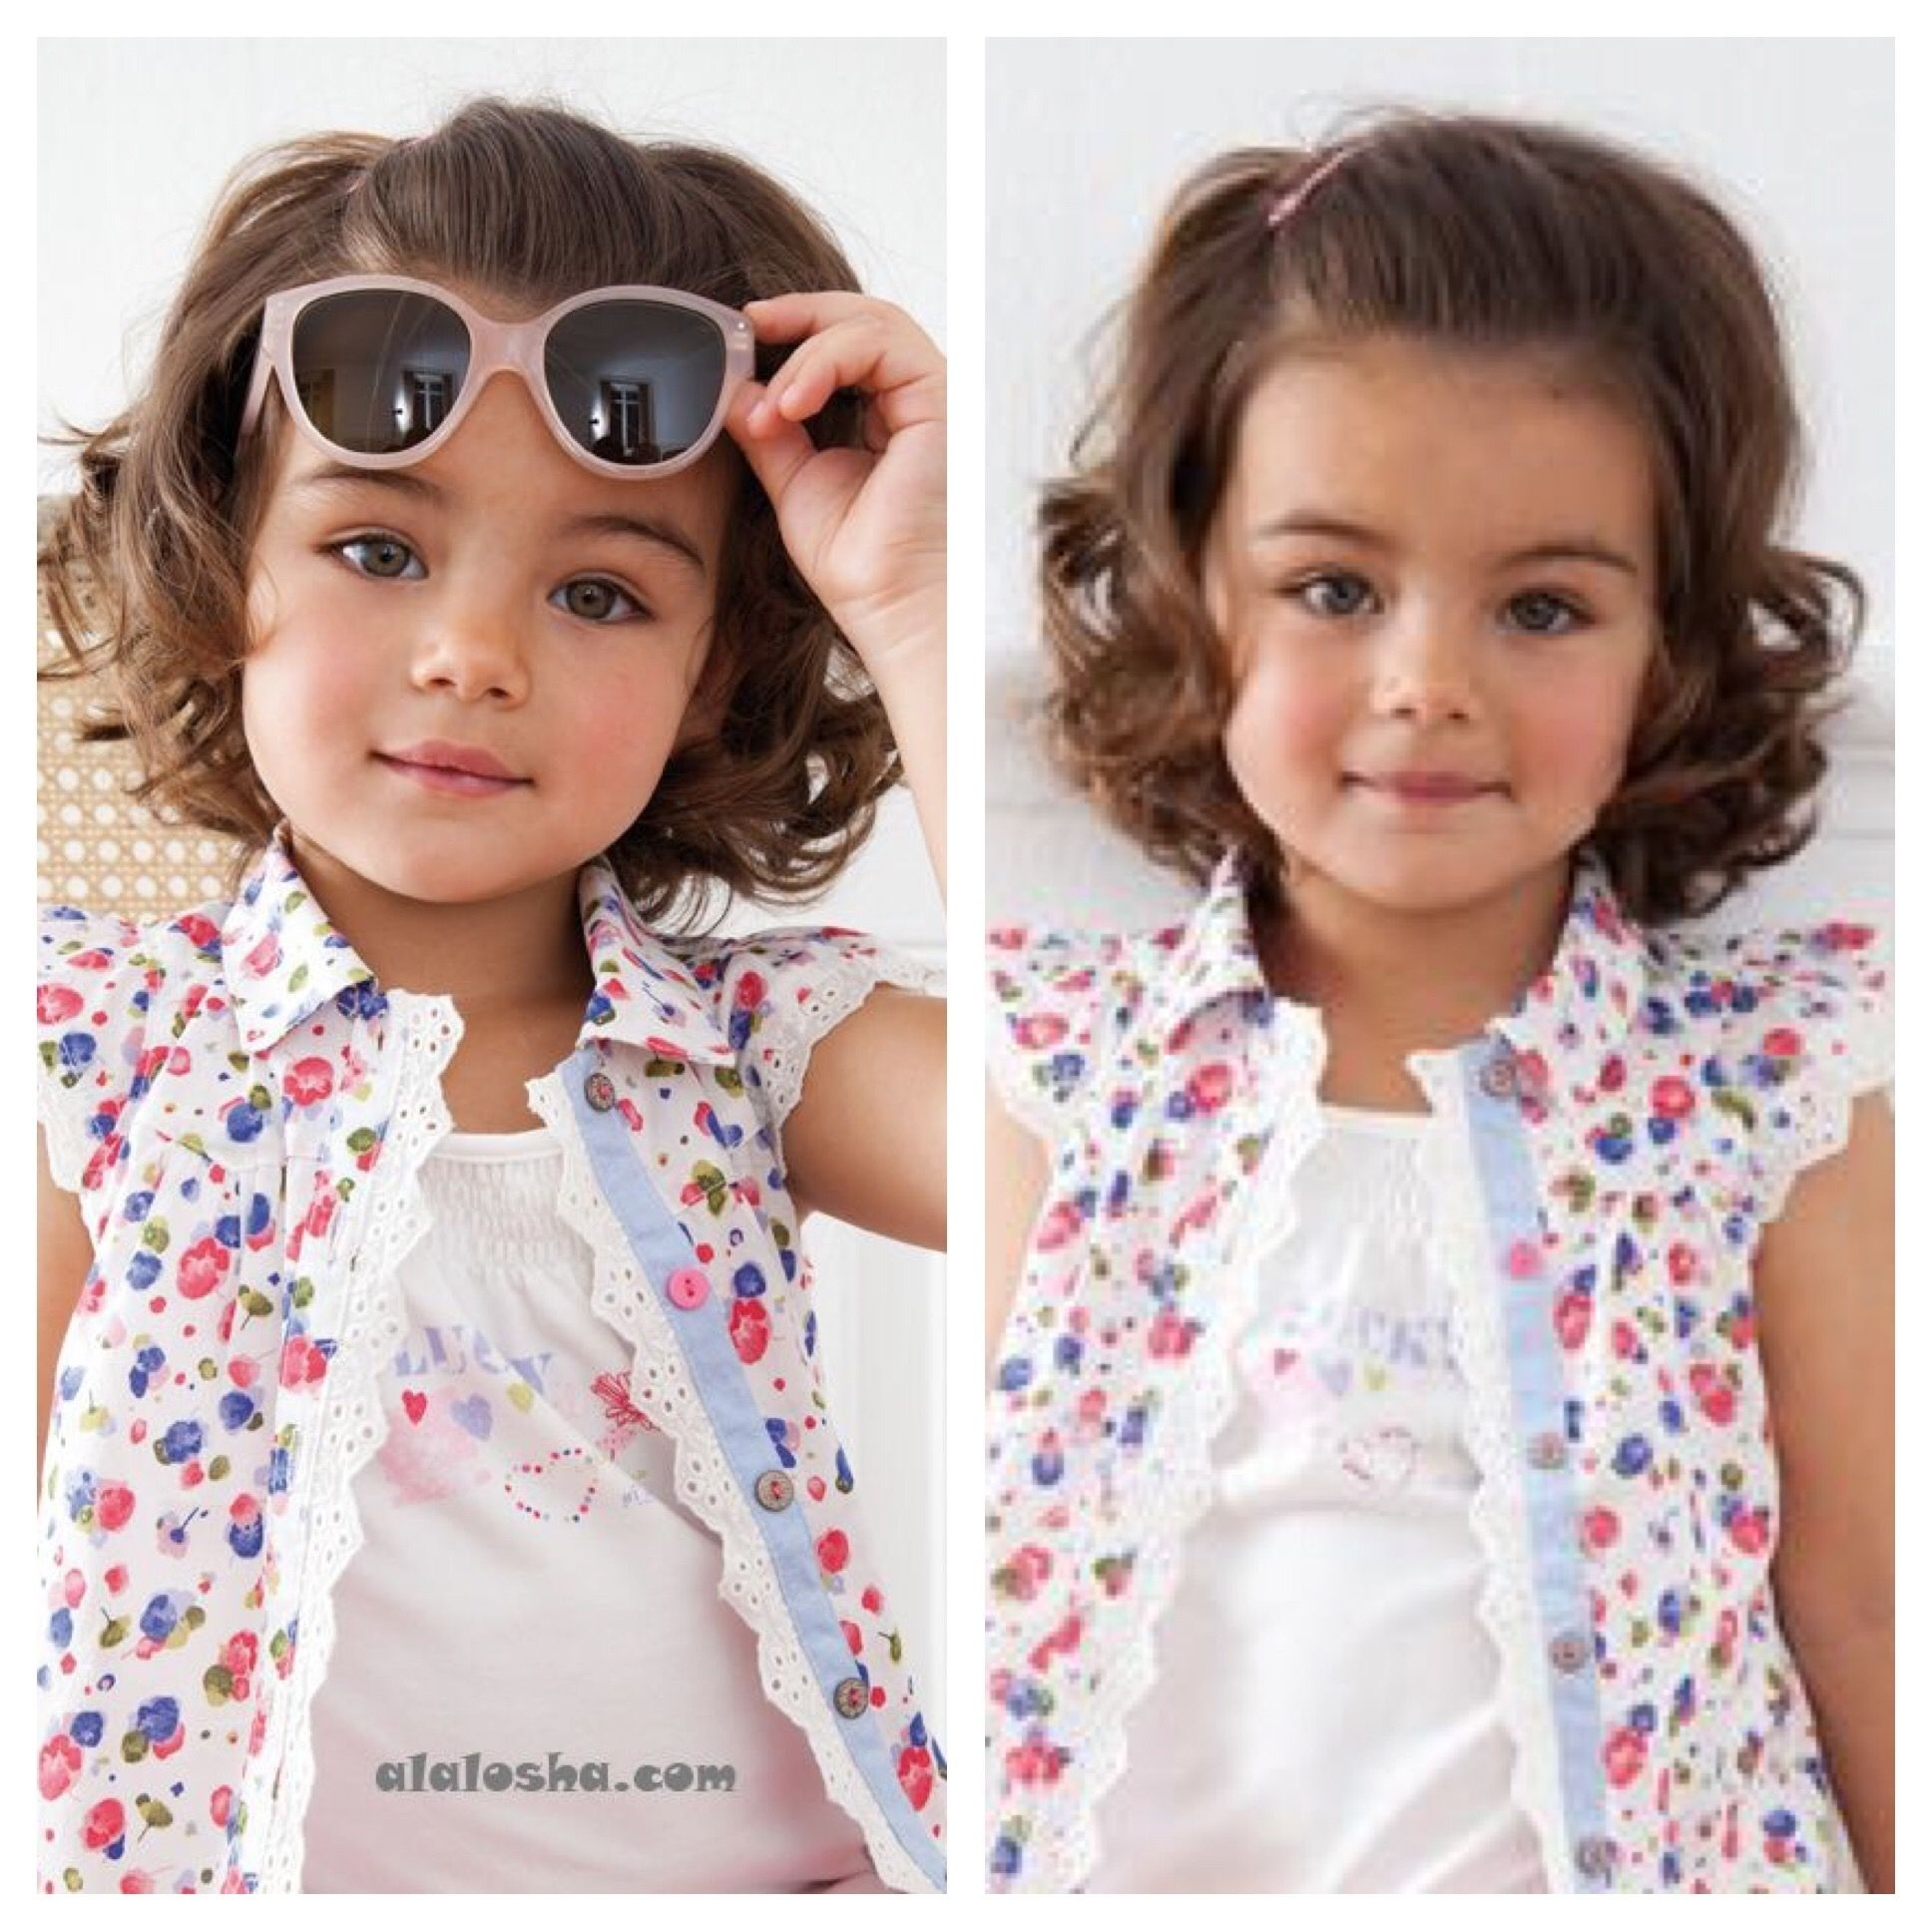 Hair Styles For Toddlers With Curly Hair   Peyton Kennedy within Haircut For Curly Hair Little Girl